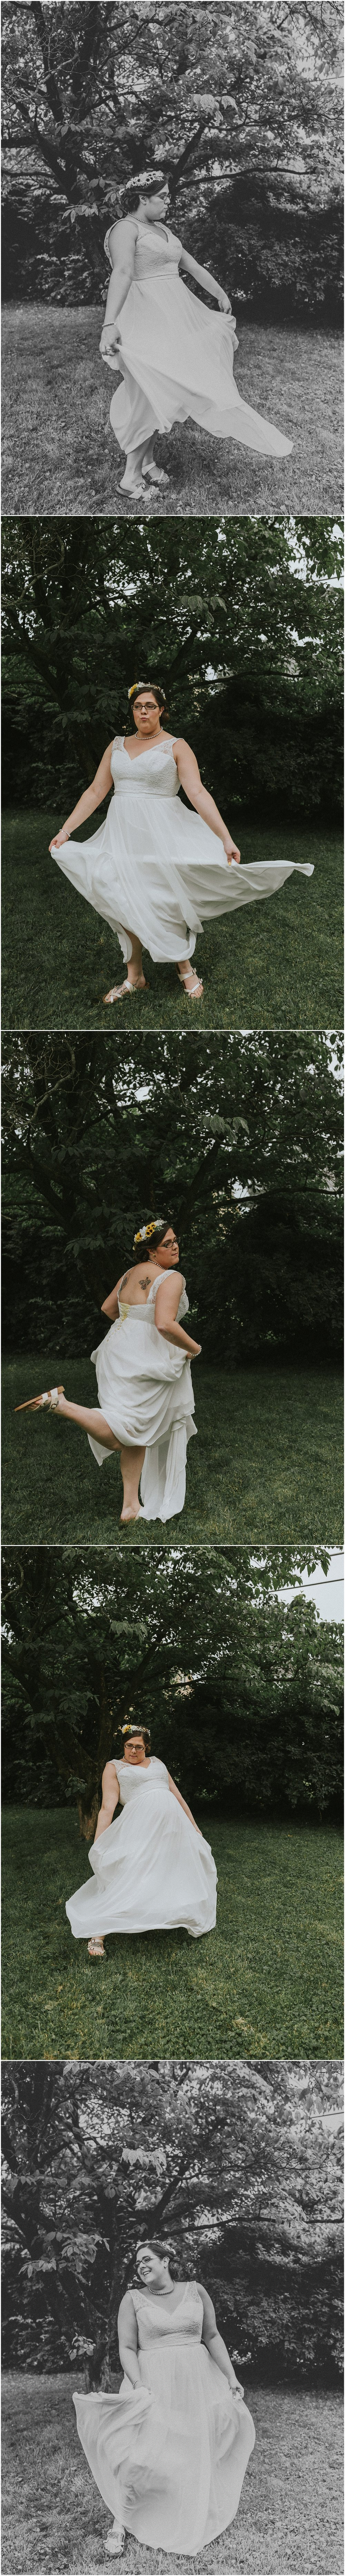 Reading-Pennsylvania-Outdoor-Wedding-DIY-Bride-Groom-Dancing-Laughter-Reception (26).jpg